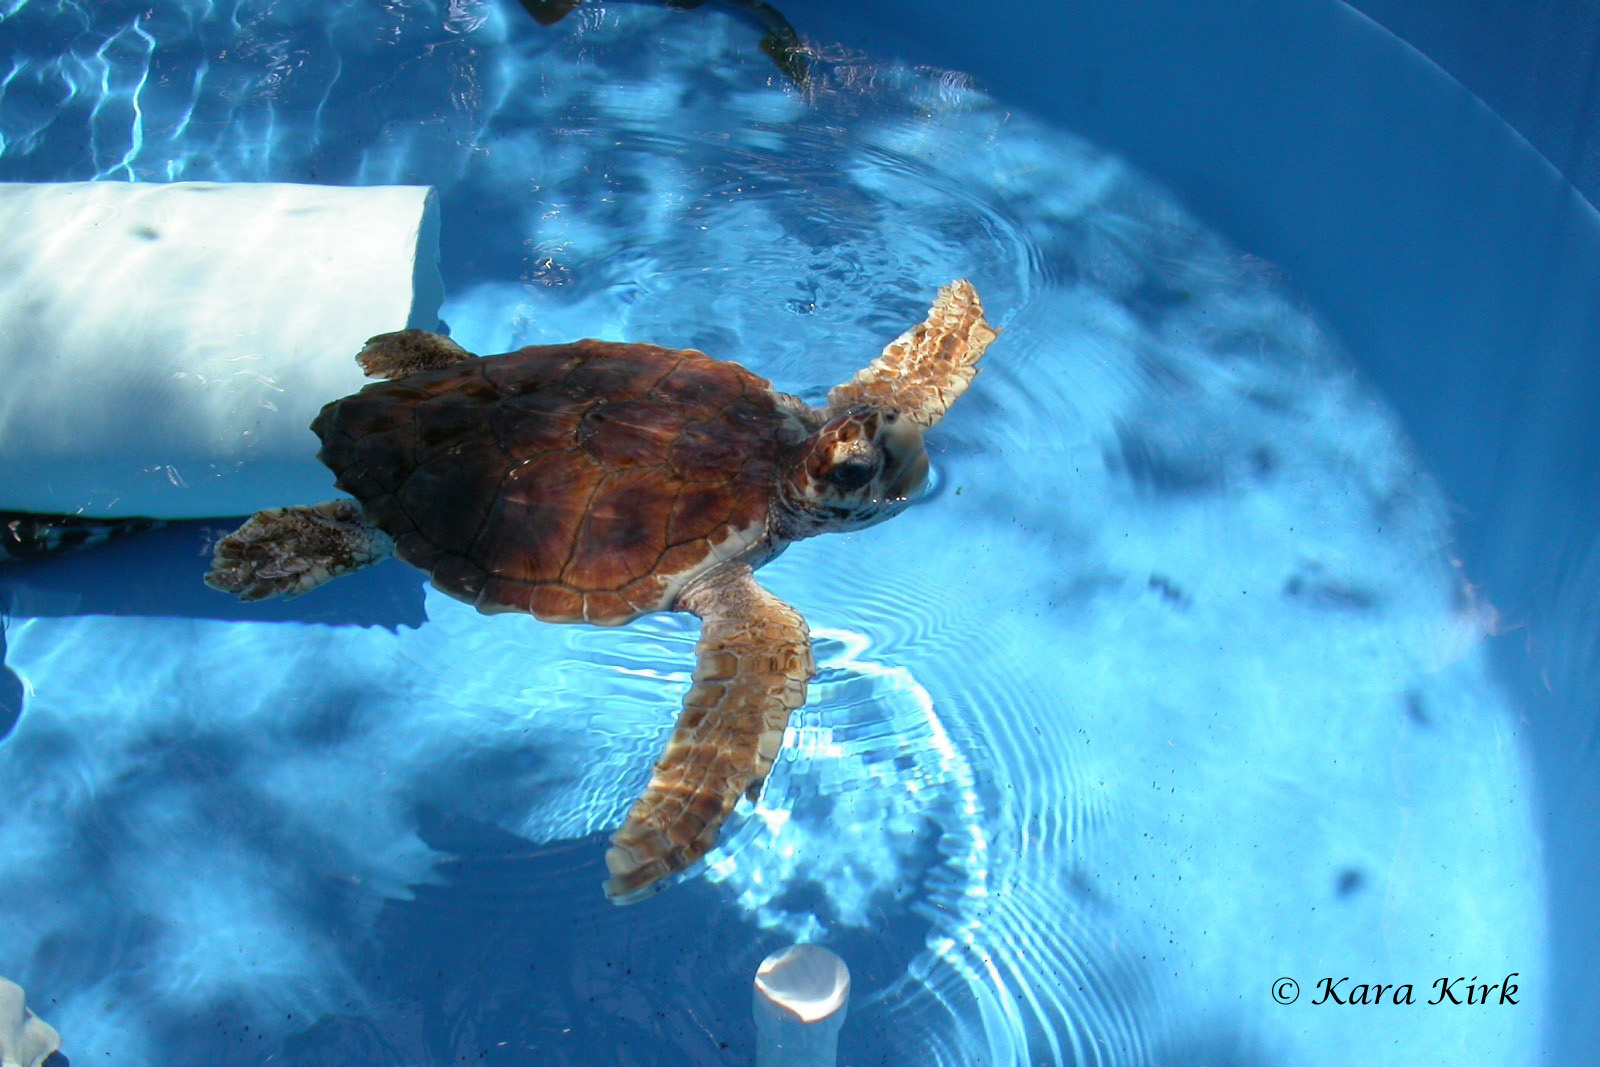 https://0201.nccdn.net/1_2/000/000/095/b2b/05-09-04-Juno-Sea-Turtle-Rehab-18-4x6-1600x1067.jpg